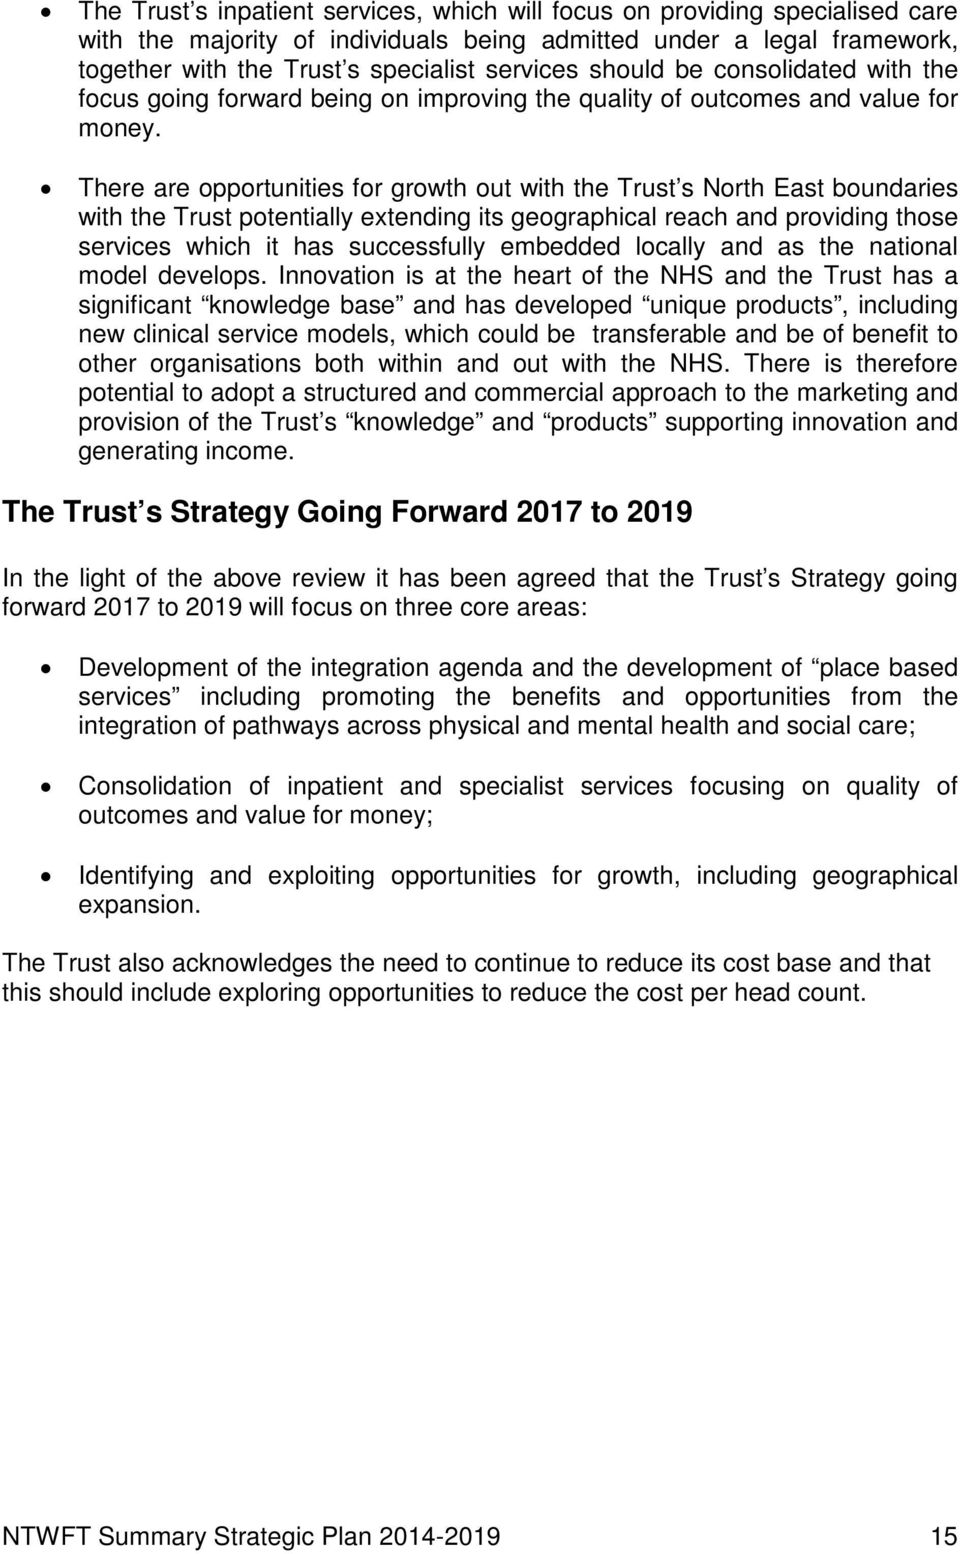 There are opportunities for growth out with the Trust s North East boundaries with the Trust potentially extending its geographical reach and providing those services which it has successfully